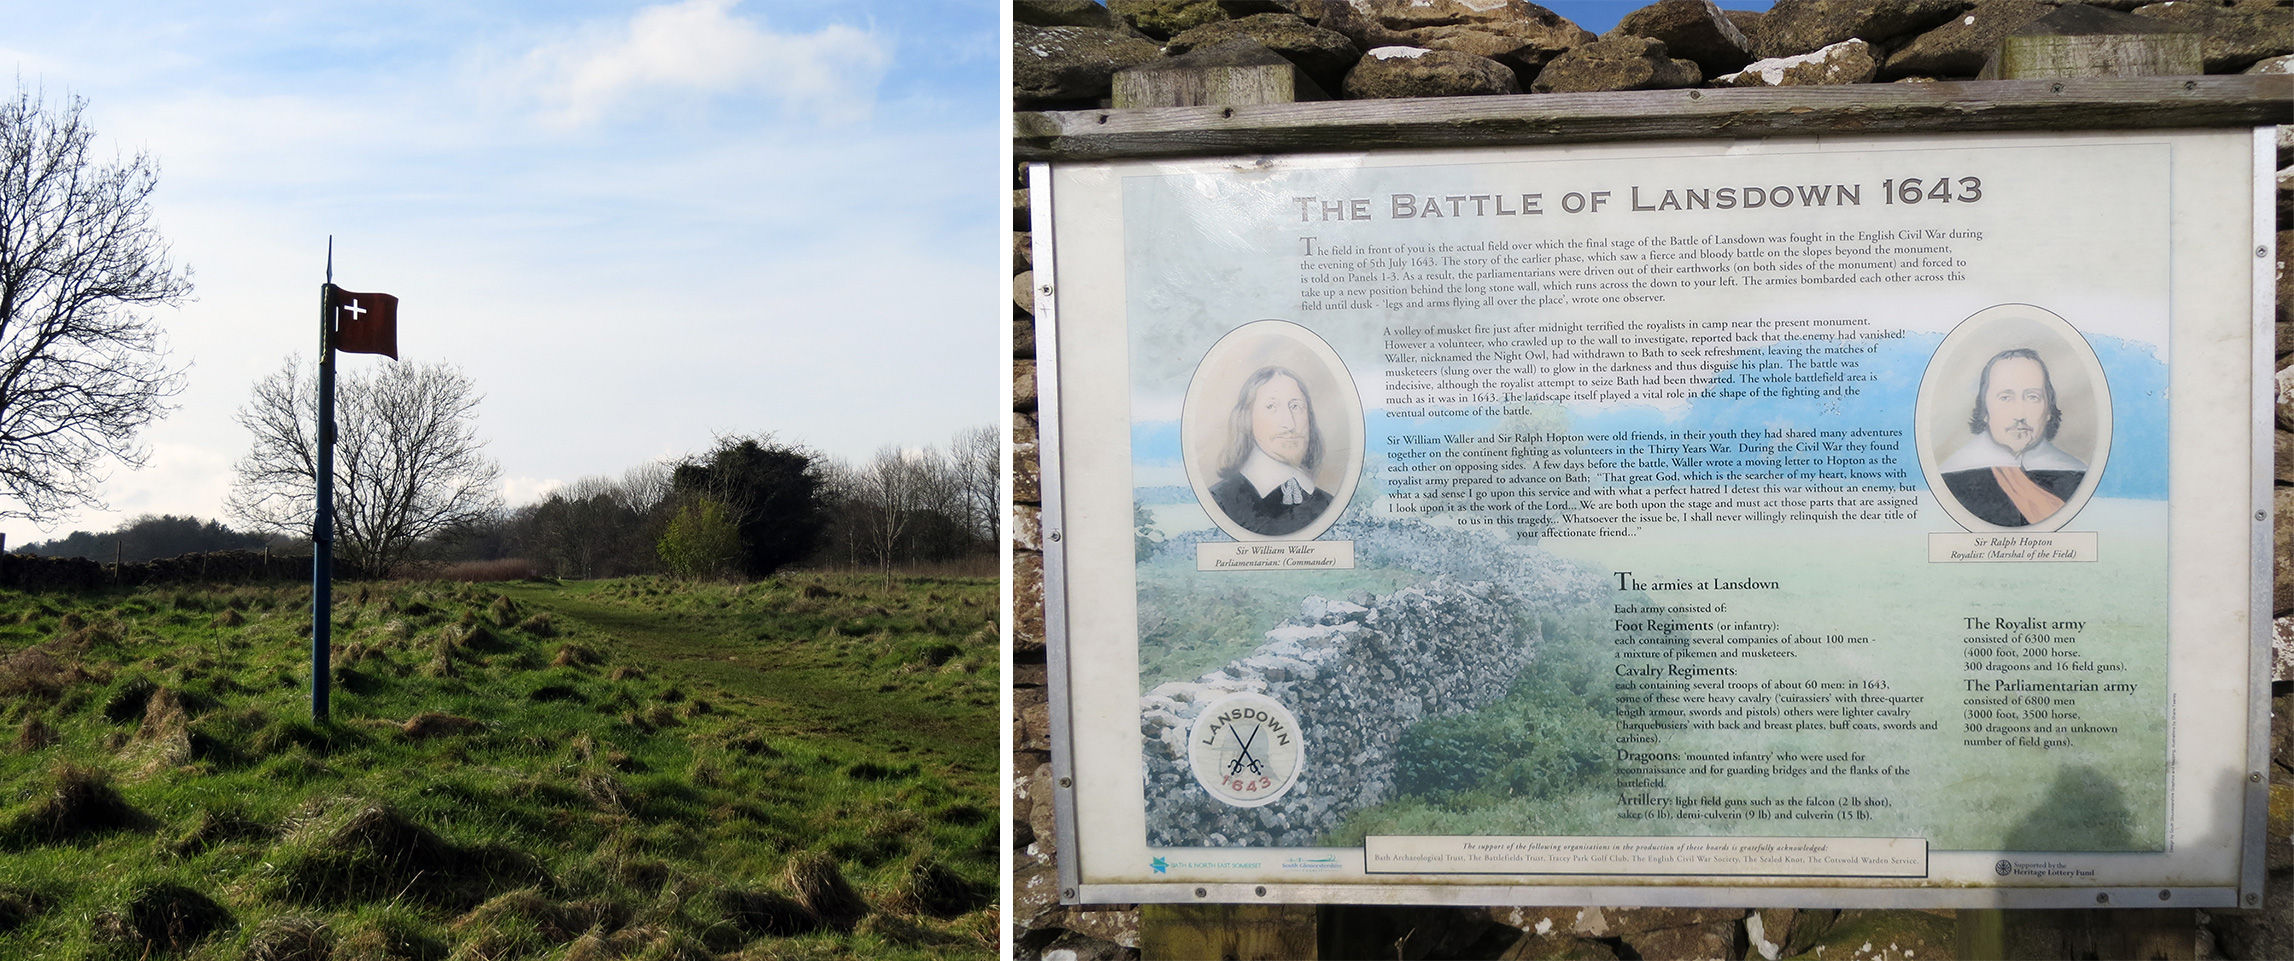 The Battle of Lansdown - battle marker and information display